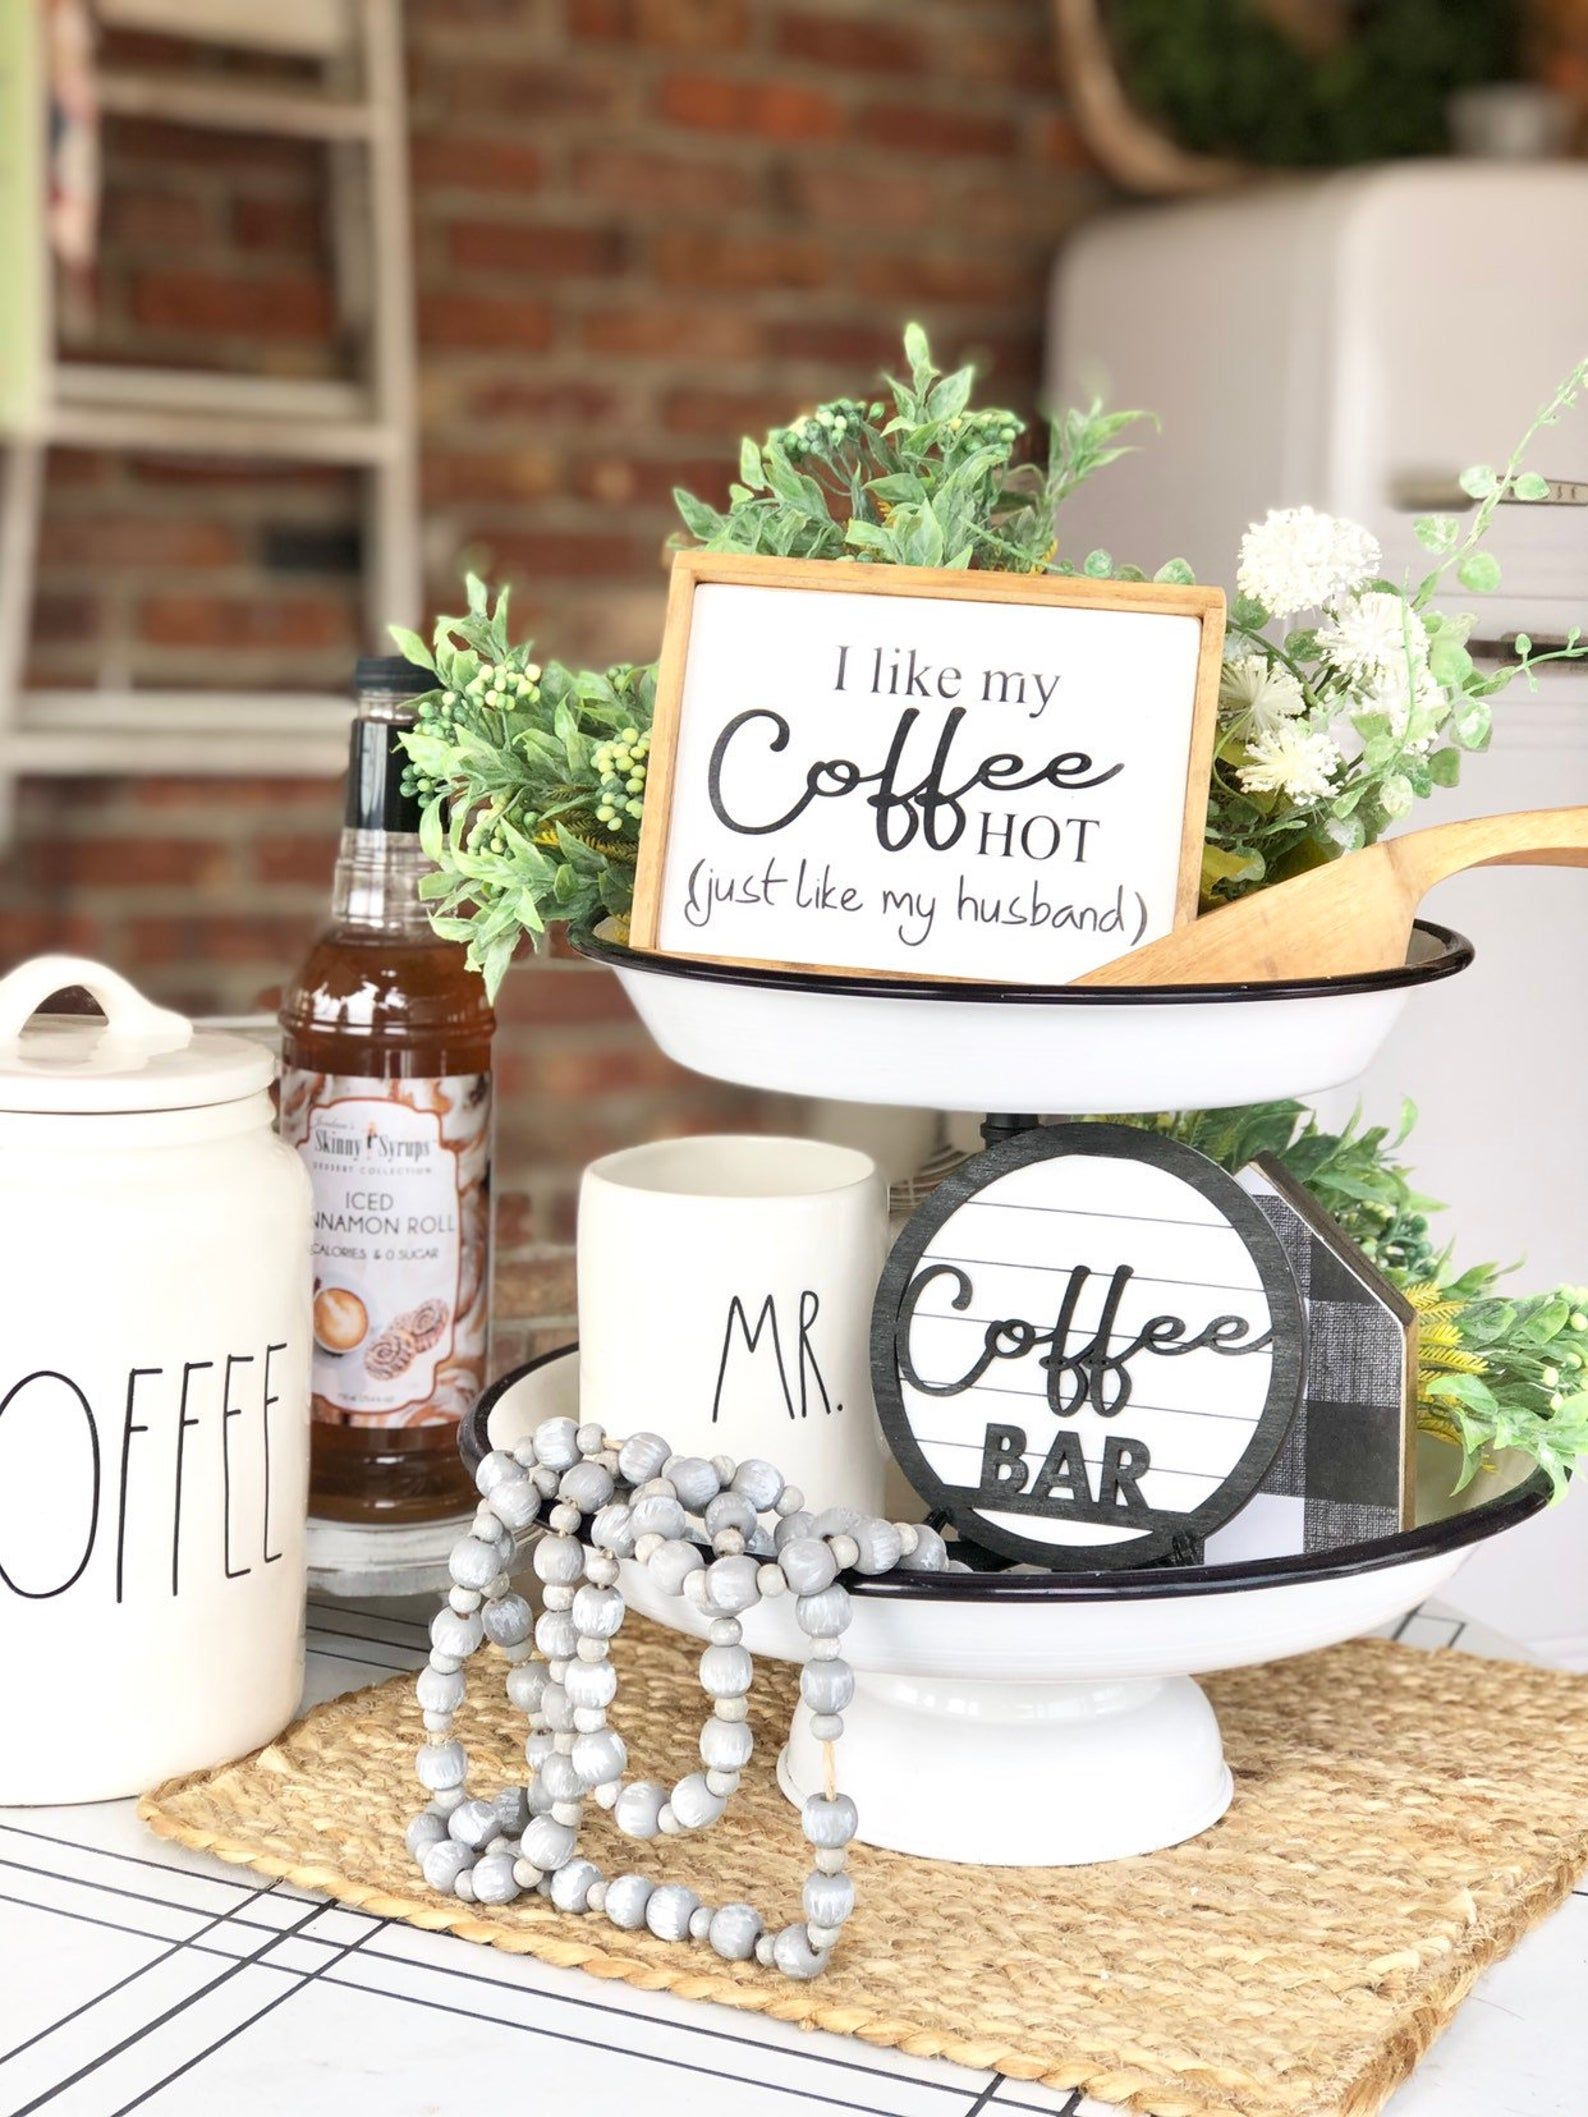 Coffee Sign Set Tiered Tray Bundle Coffee Sign Framed Etsy In 2021 Coffee Bar Tray Decor Tiered Tray Decor